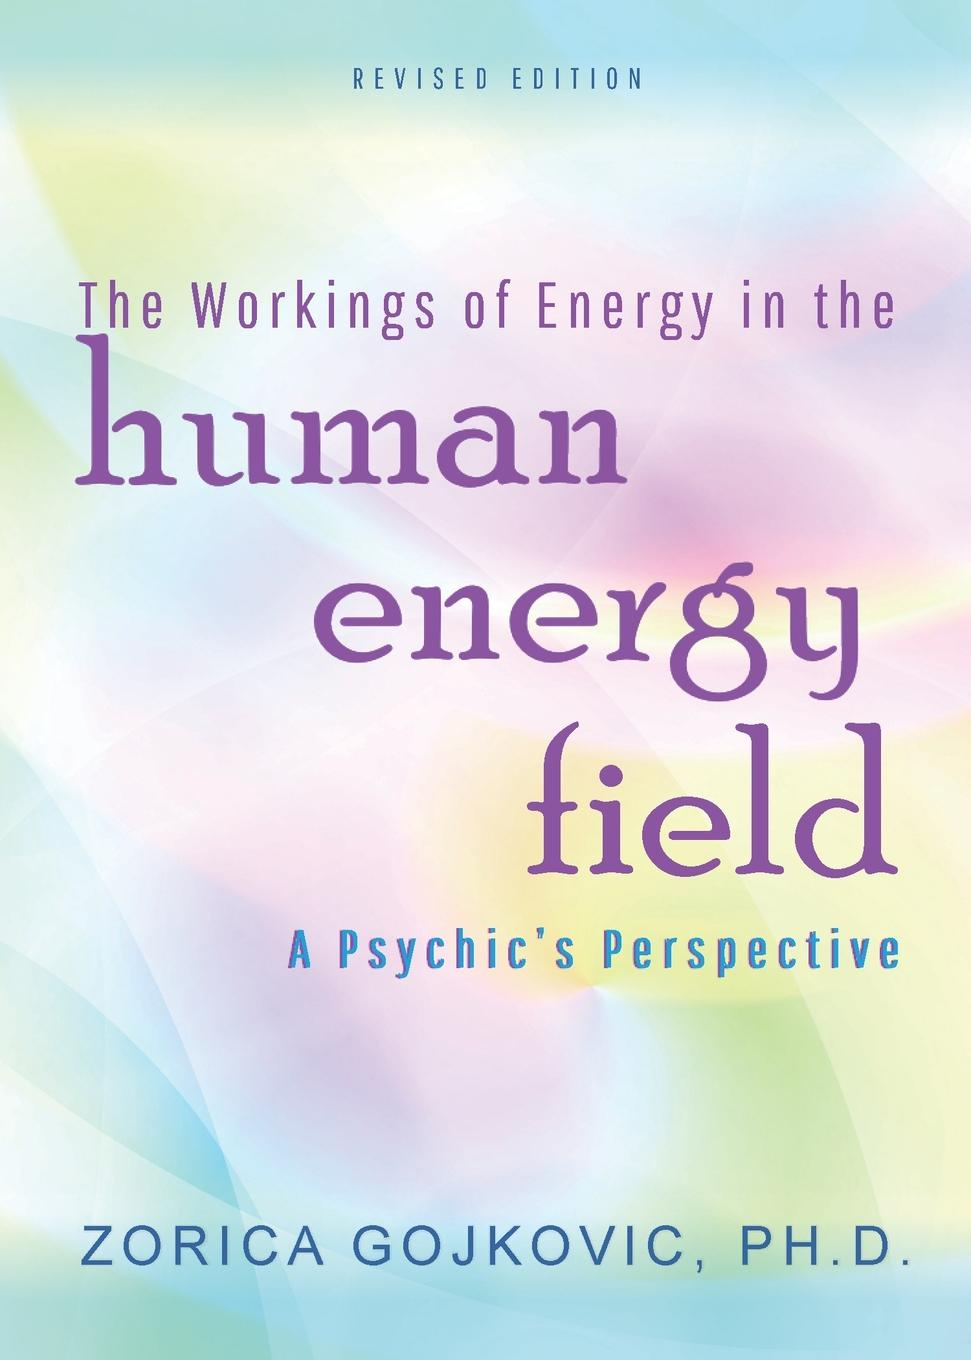 Zorica Gojkovic PhD The Workings of Energy in the Human Energy Field. A Psychic.s Perspective ken blanchard the energy bus 10 rules to fuel your life work and team with positive energy